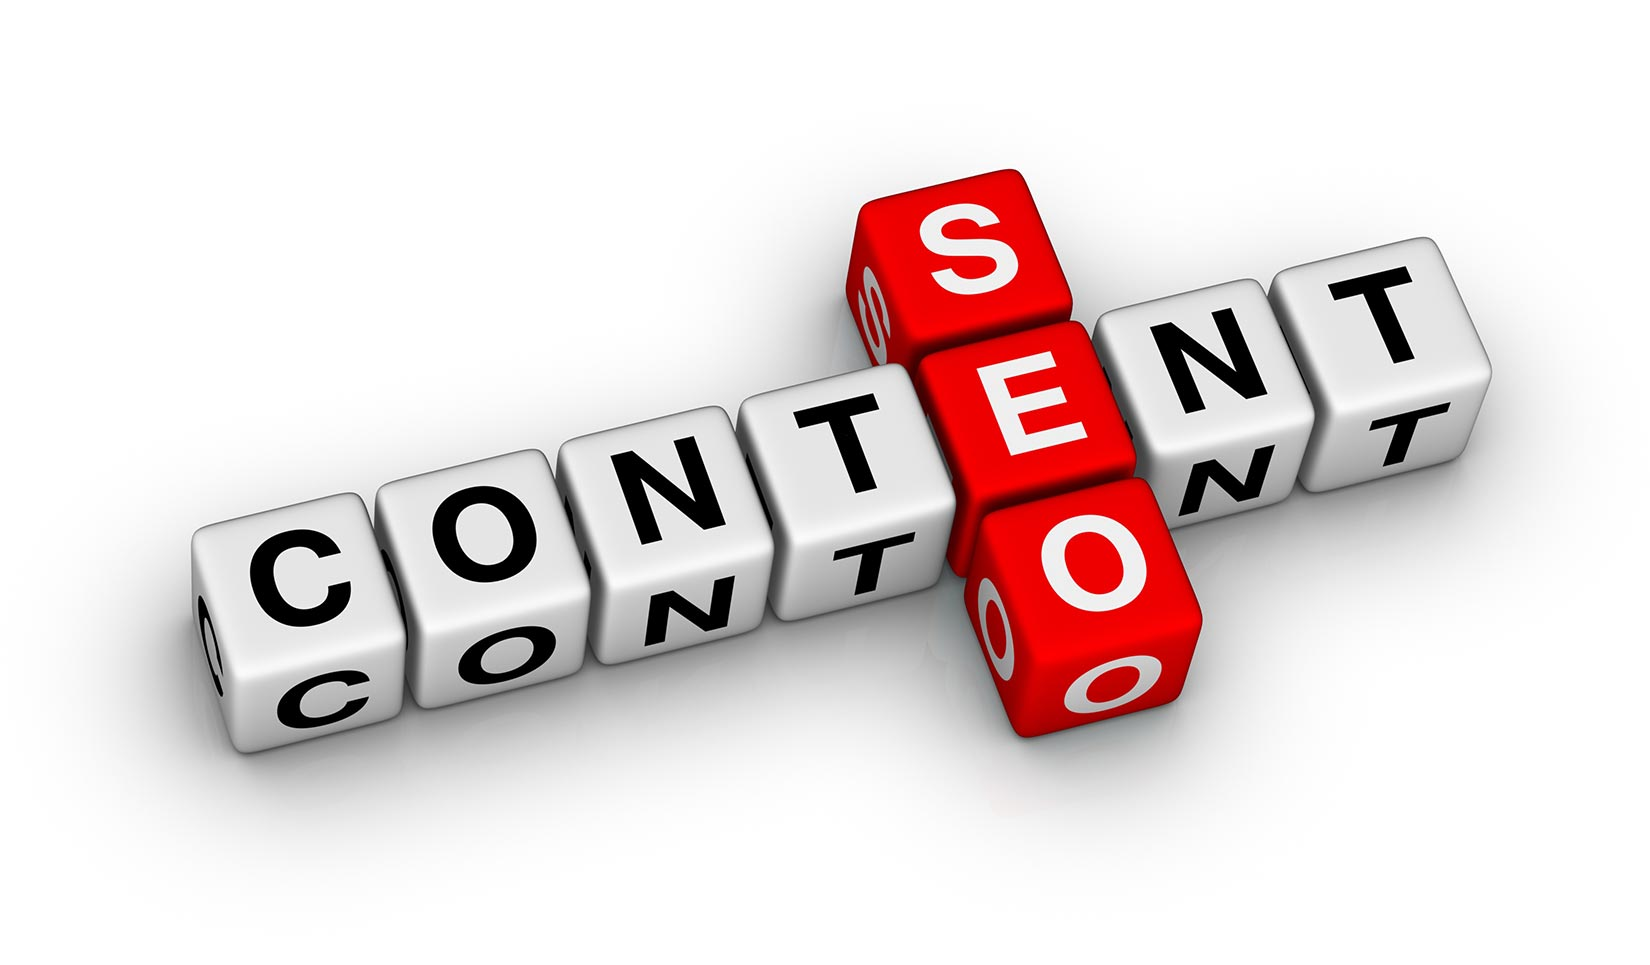 Failure to confuse content marketing with content SEO?